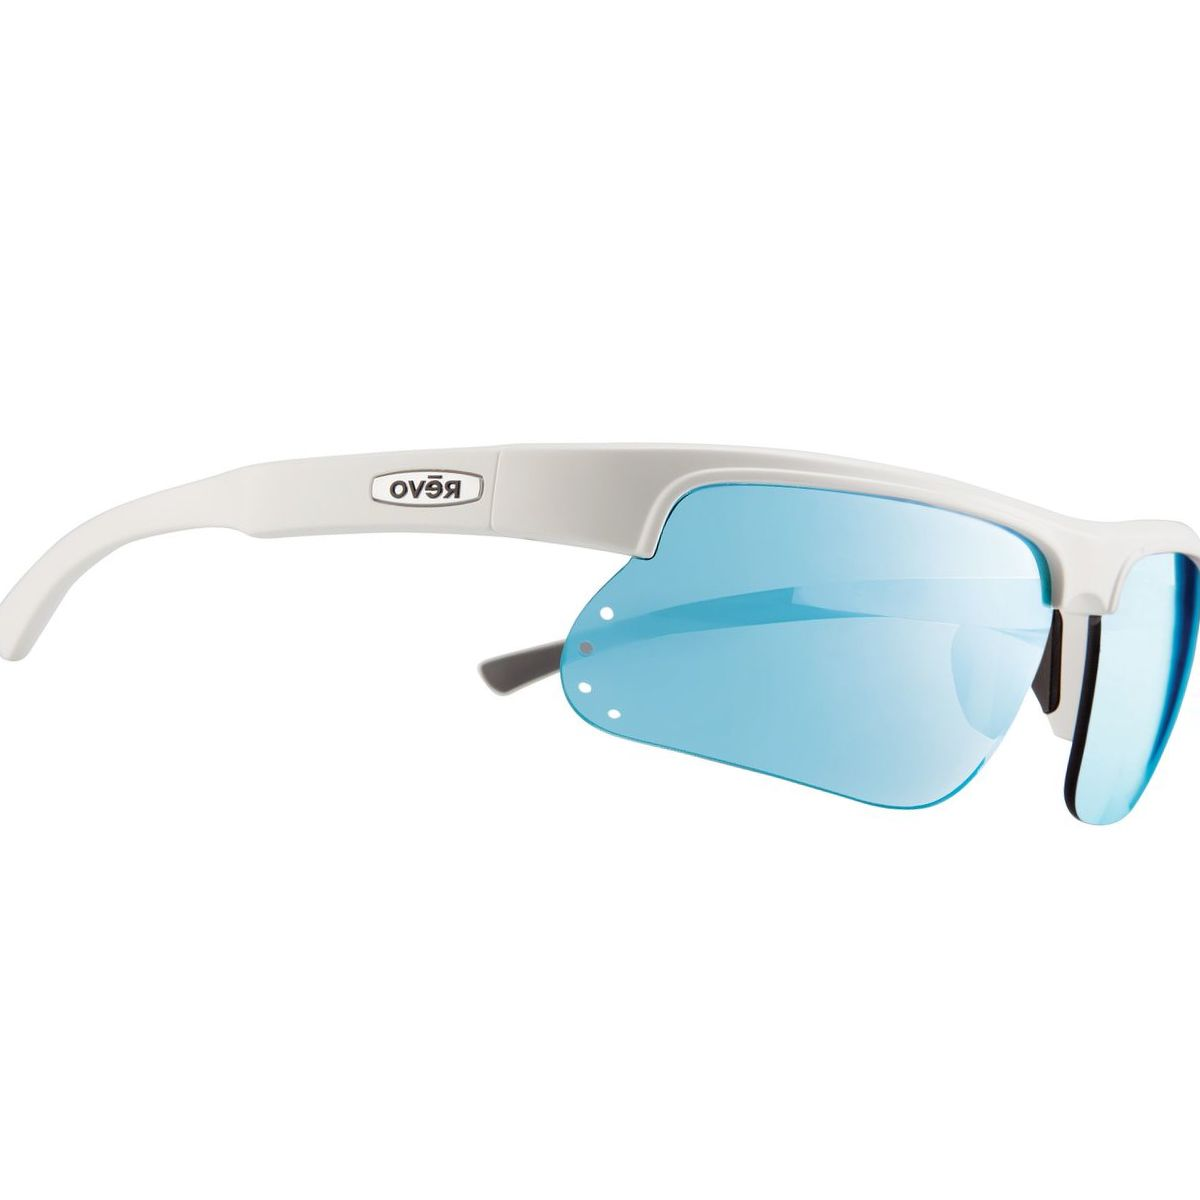 Revo Cusp S Polarized Sunglasses - Men's